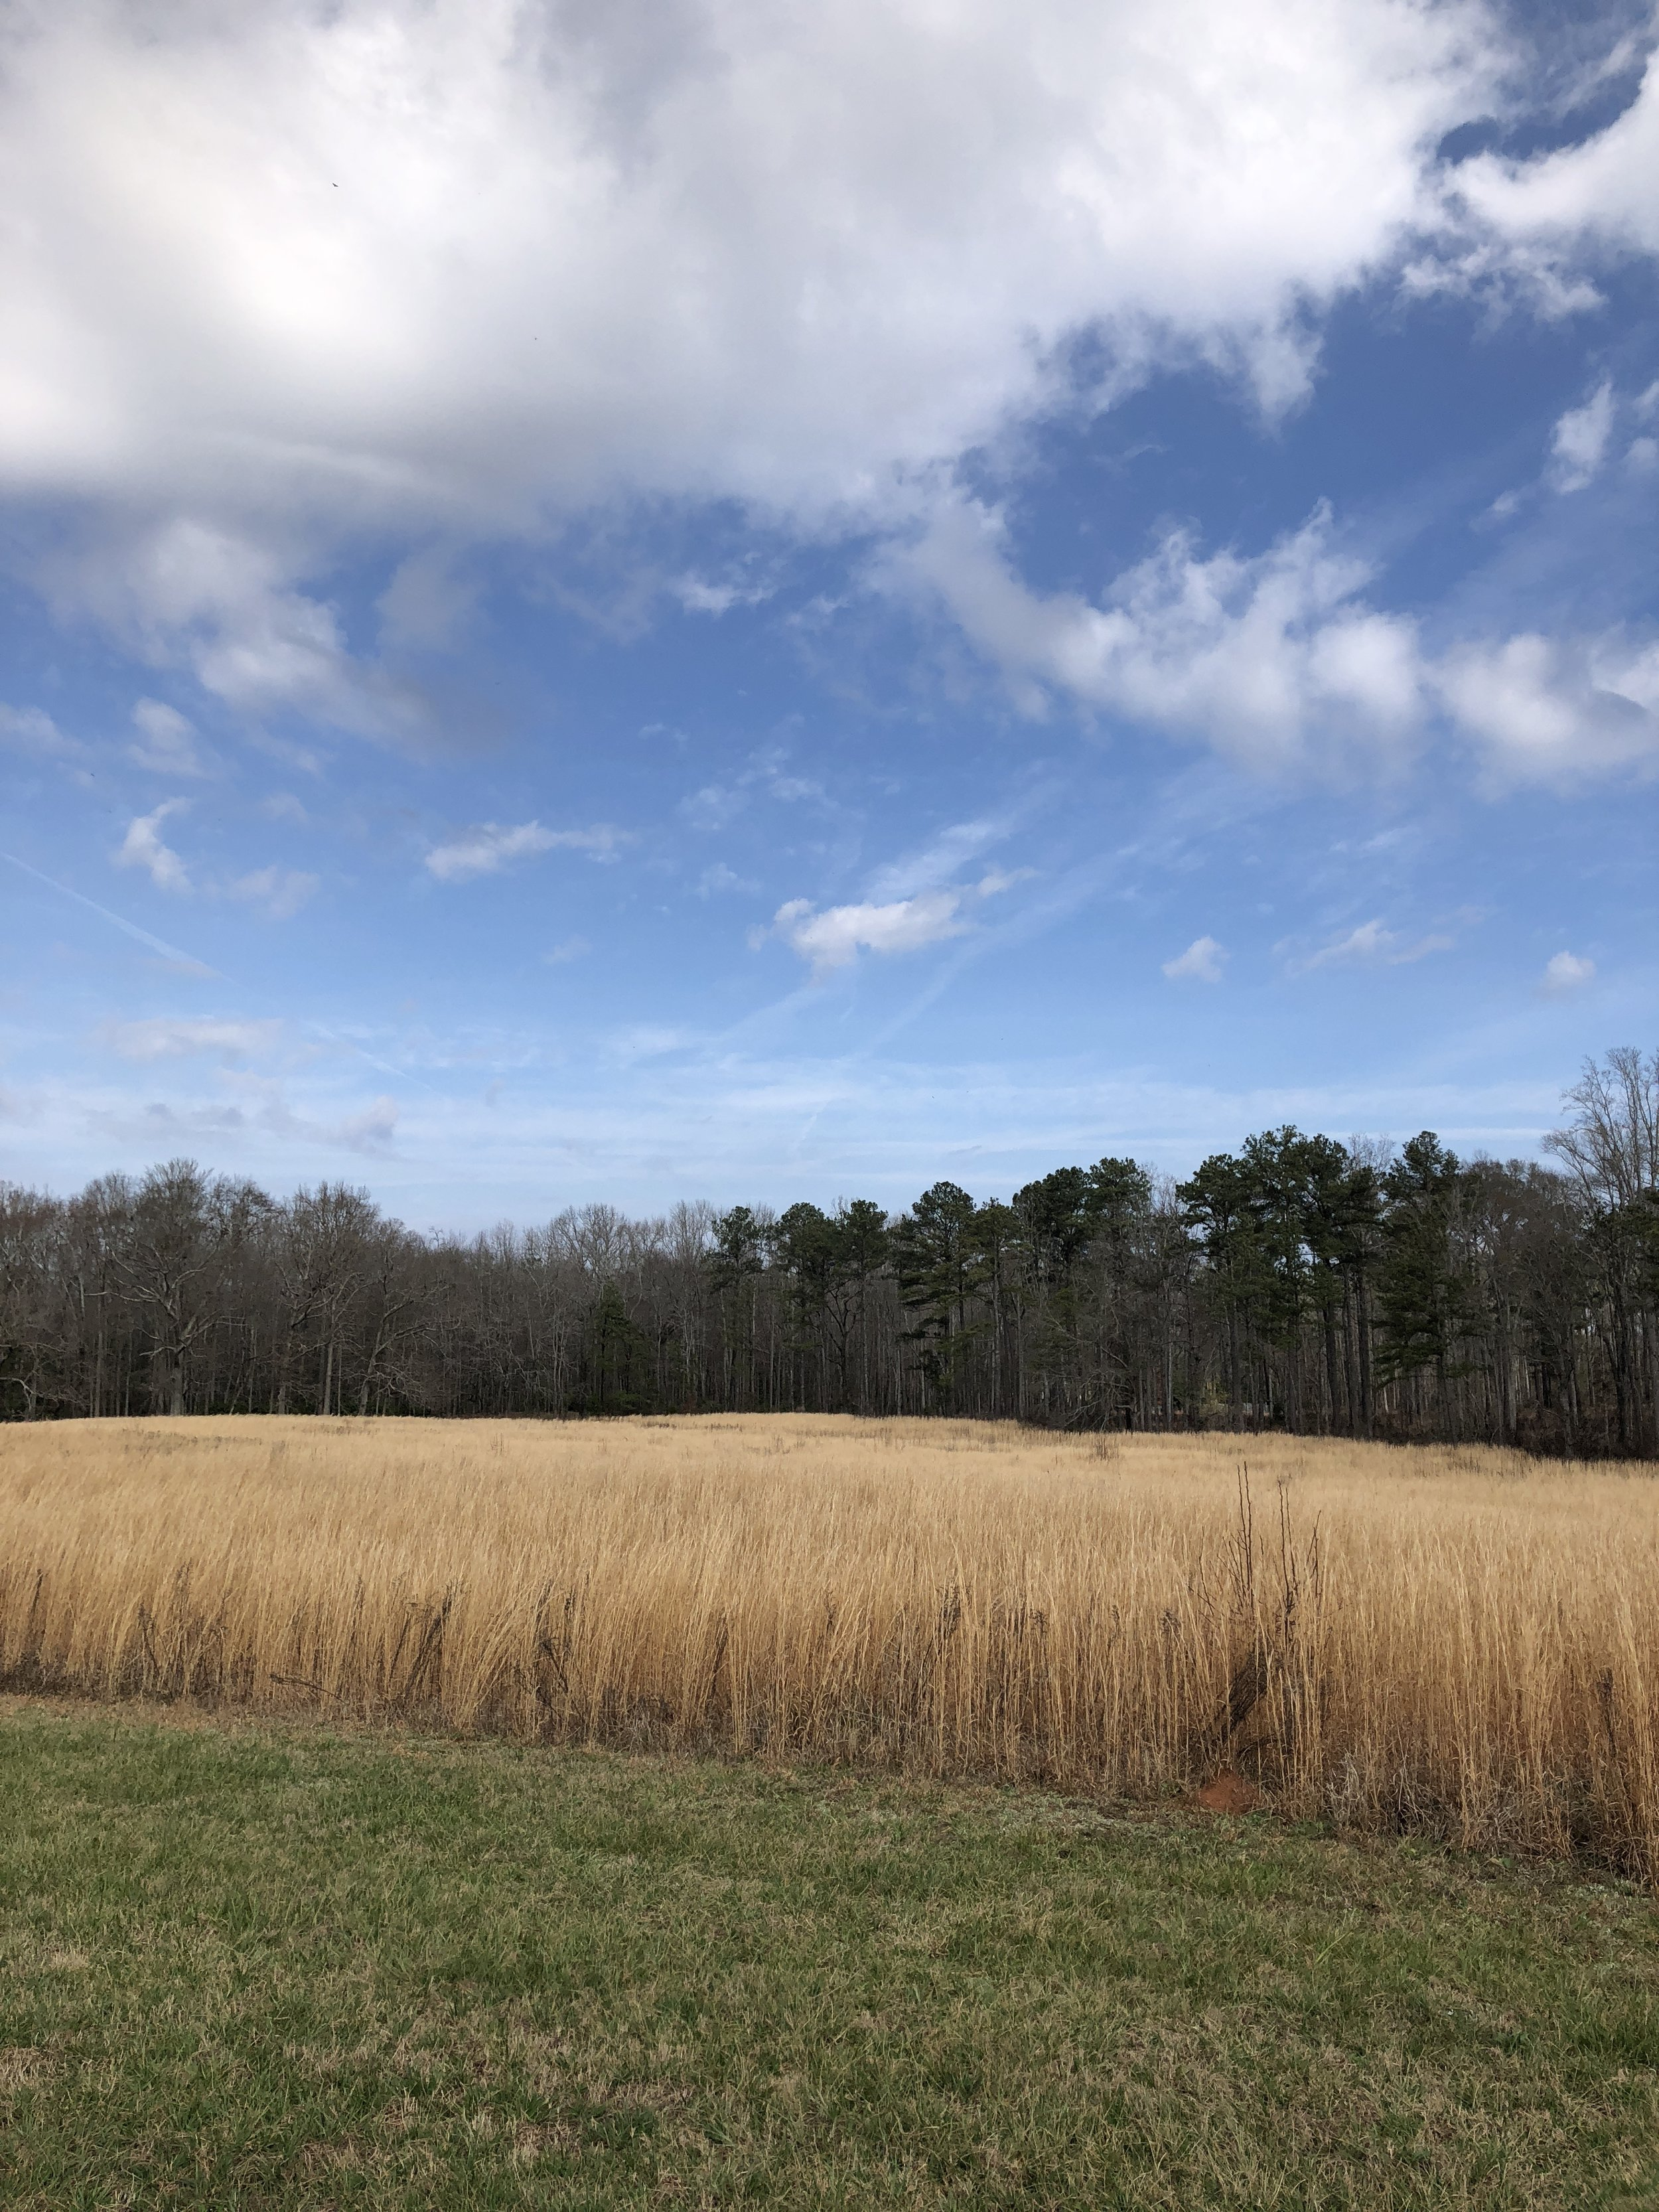 Along the entrance parkway. Tall grasses that sway and ripple in the breeze.